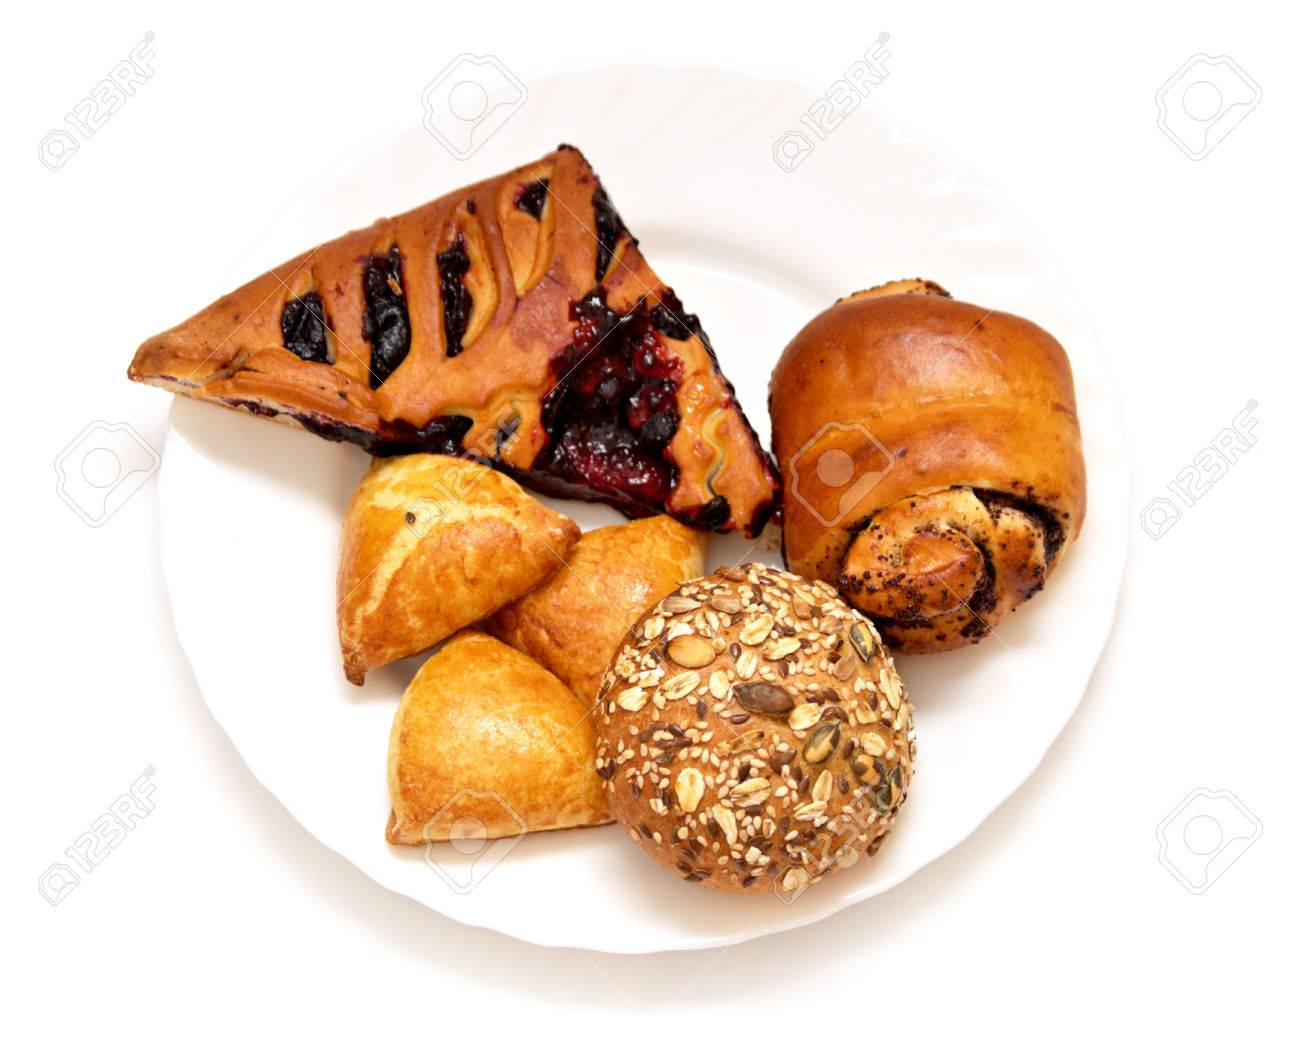 Assorted pastries and pies with filling baking on a white plate Stock Photo - 25200542  sc 1 st  123RF.com & Assorted Pastries And Pies With Filling Baking On A White Plate ...